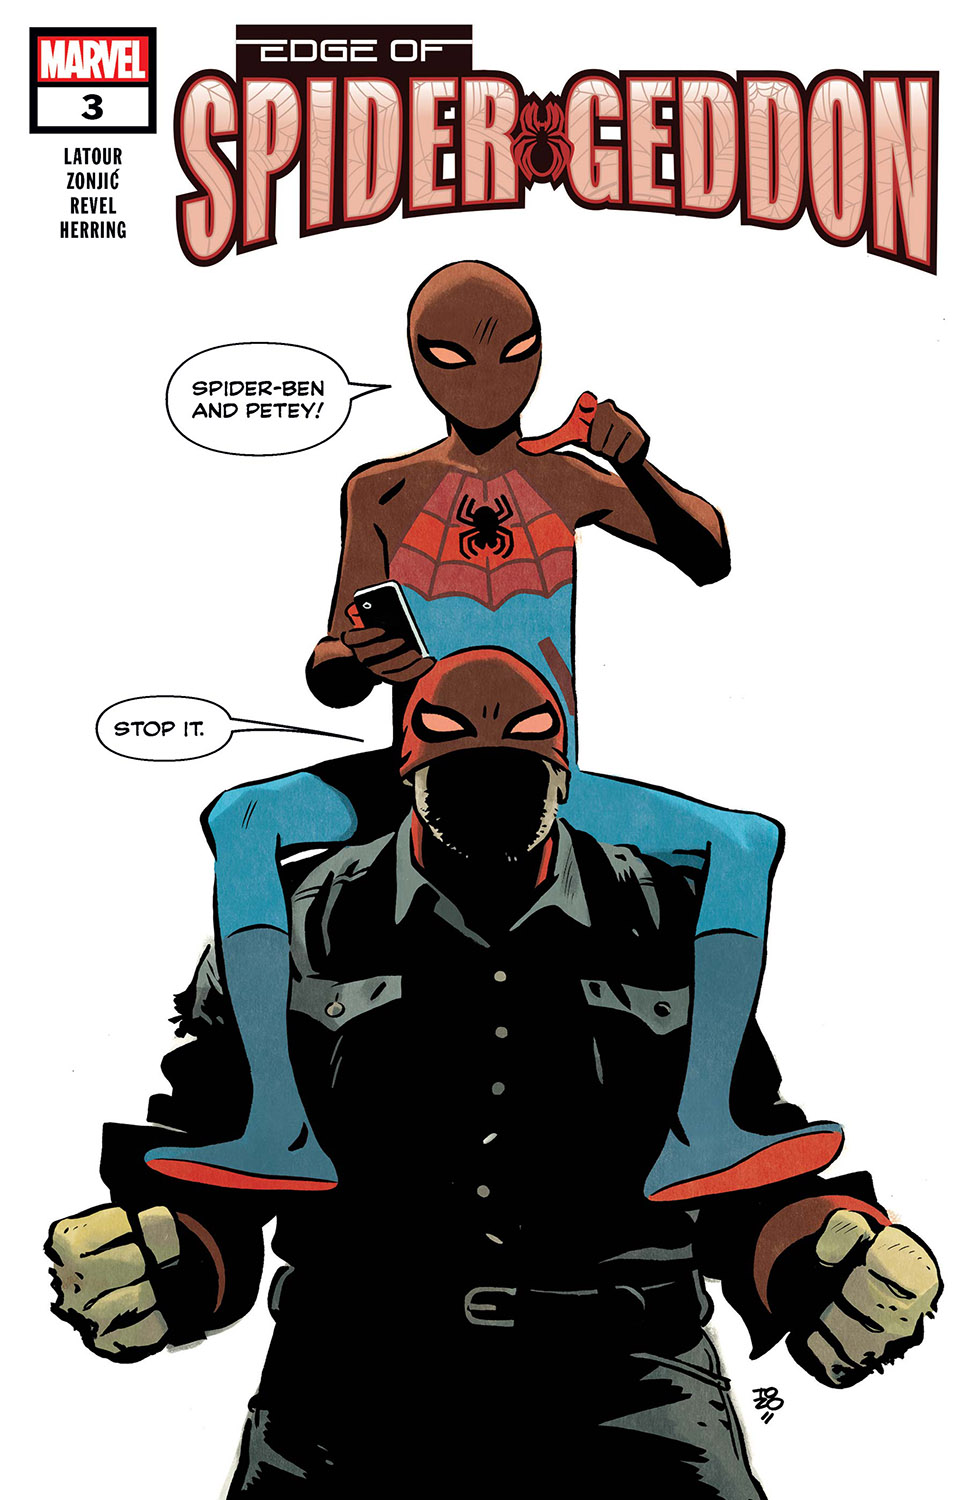 Edge of Spider-Geddon (2018) #3